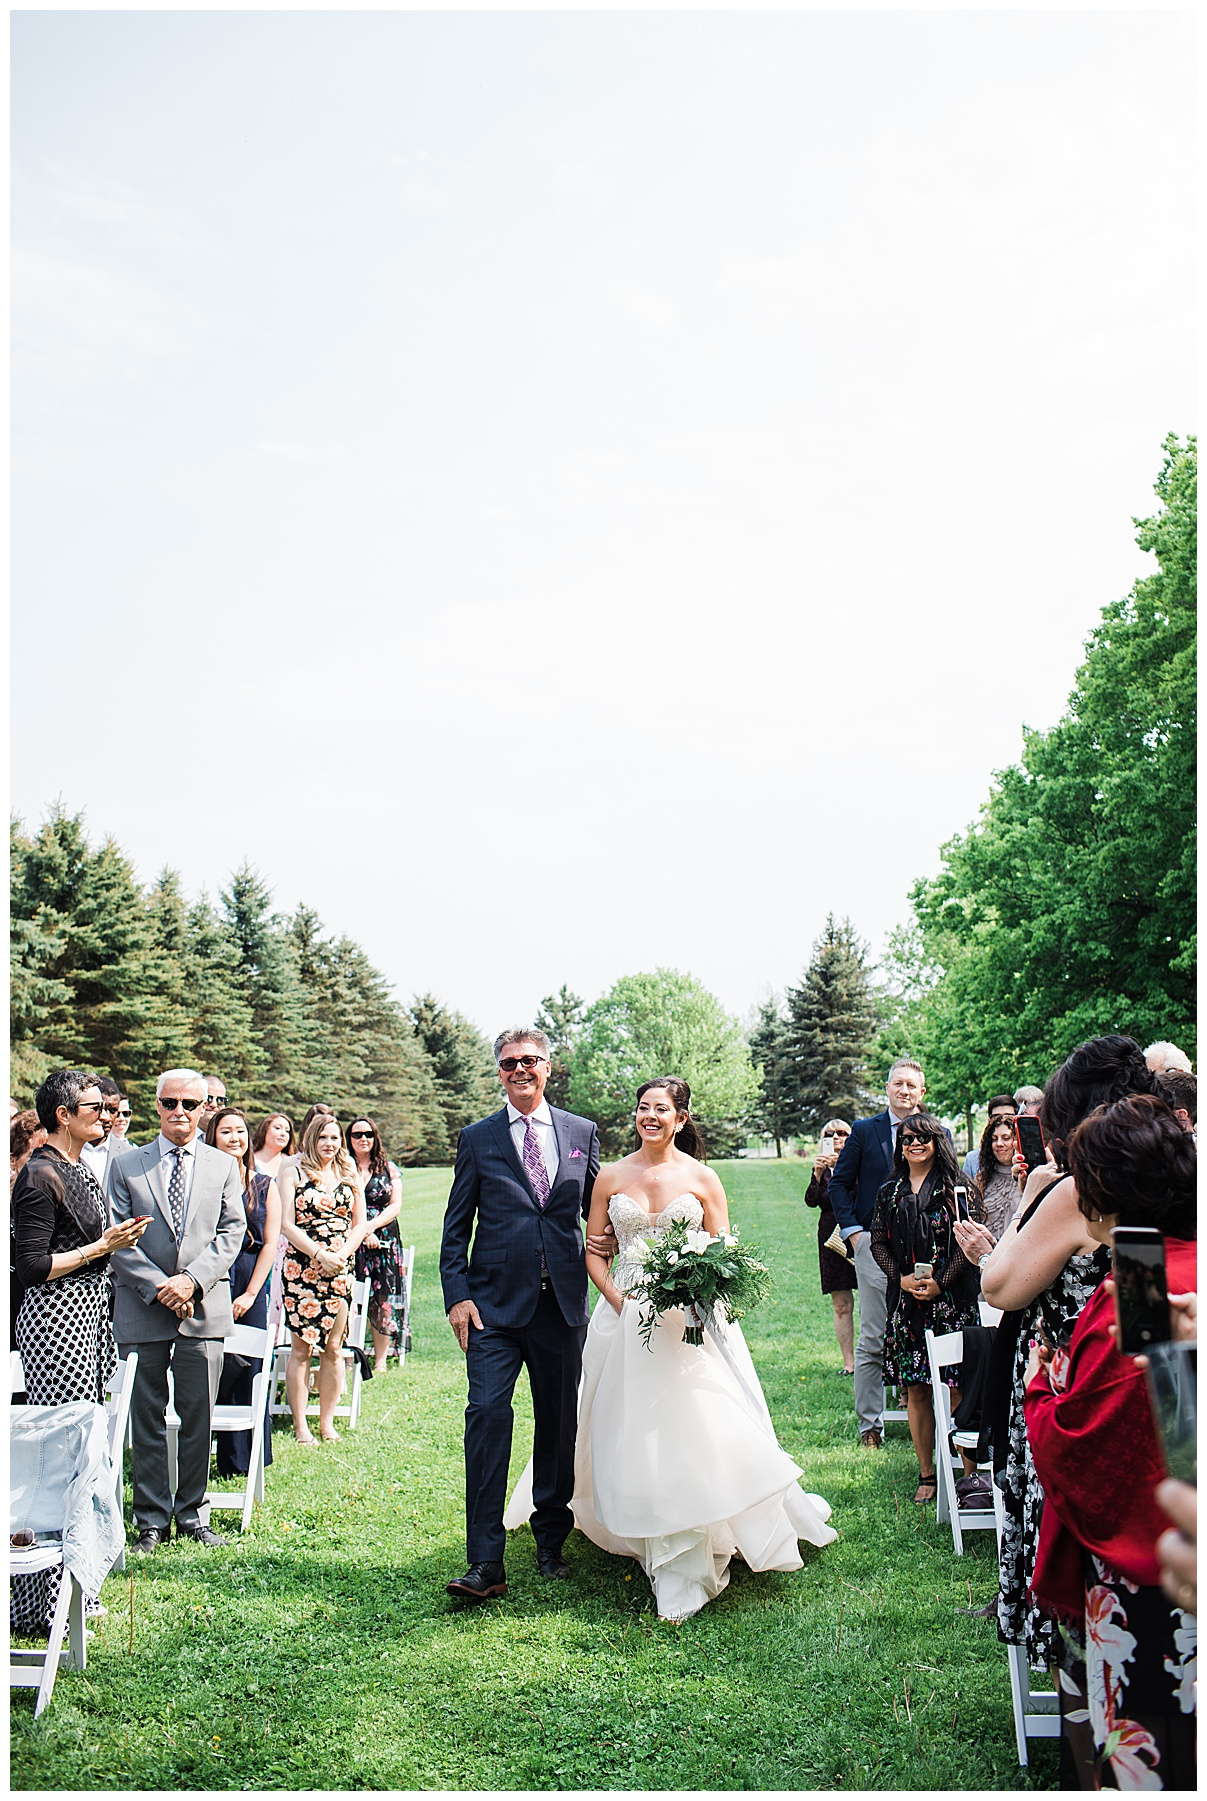 Bride walks down aisle with father| outdoor tree-farm ceremony| Belcroft Estate Wedding| Toronto wedding photographer| Ontario wedding photographer| 3photography